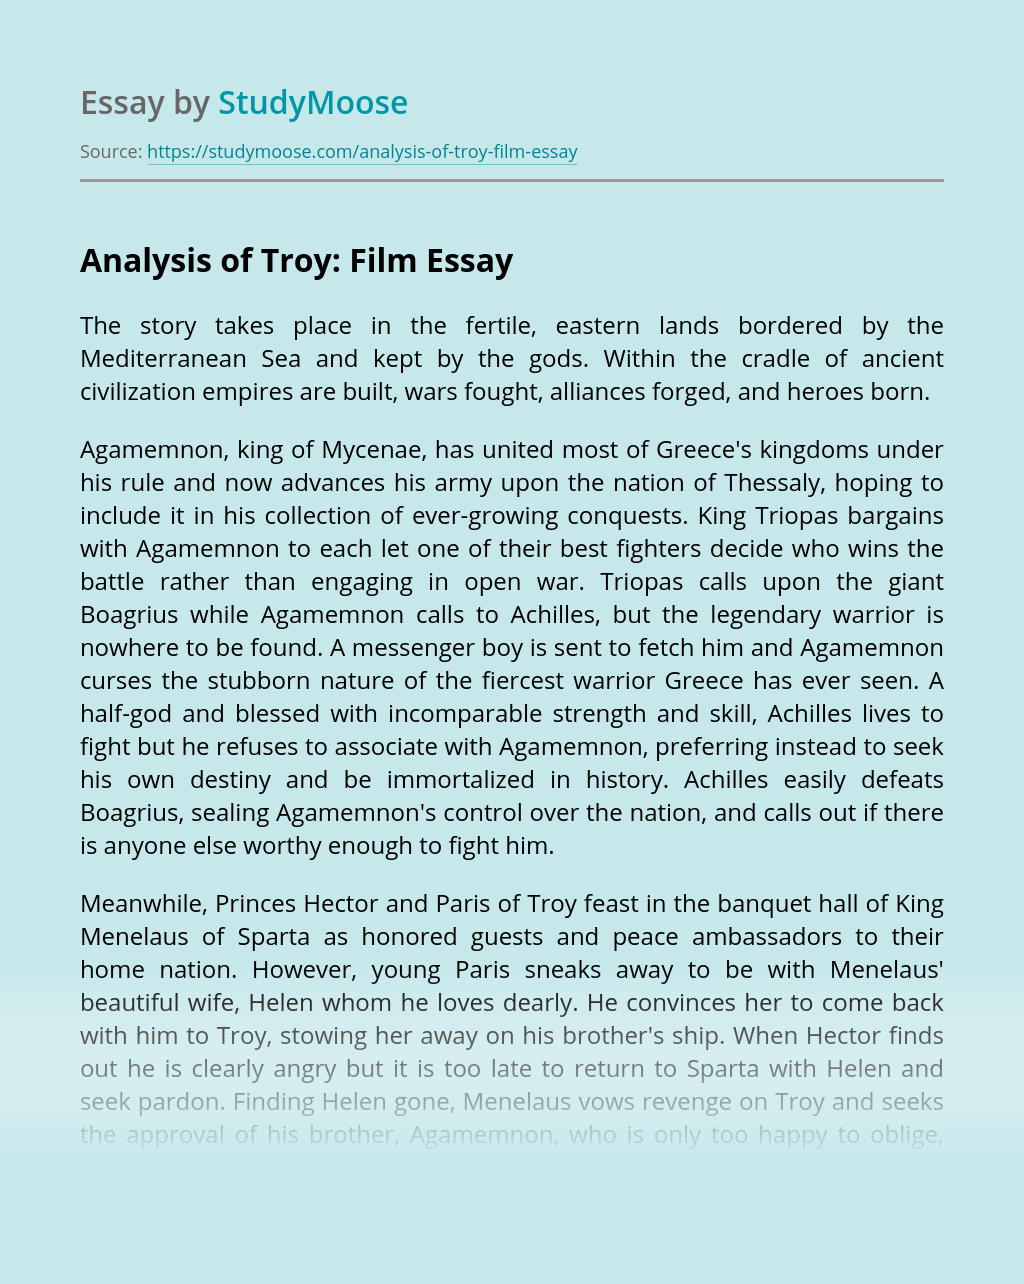 Analysis of Troy: Film